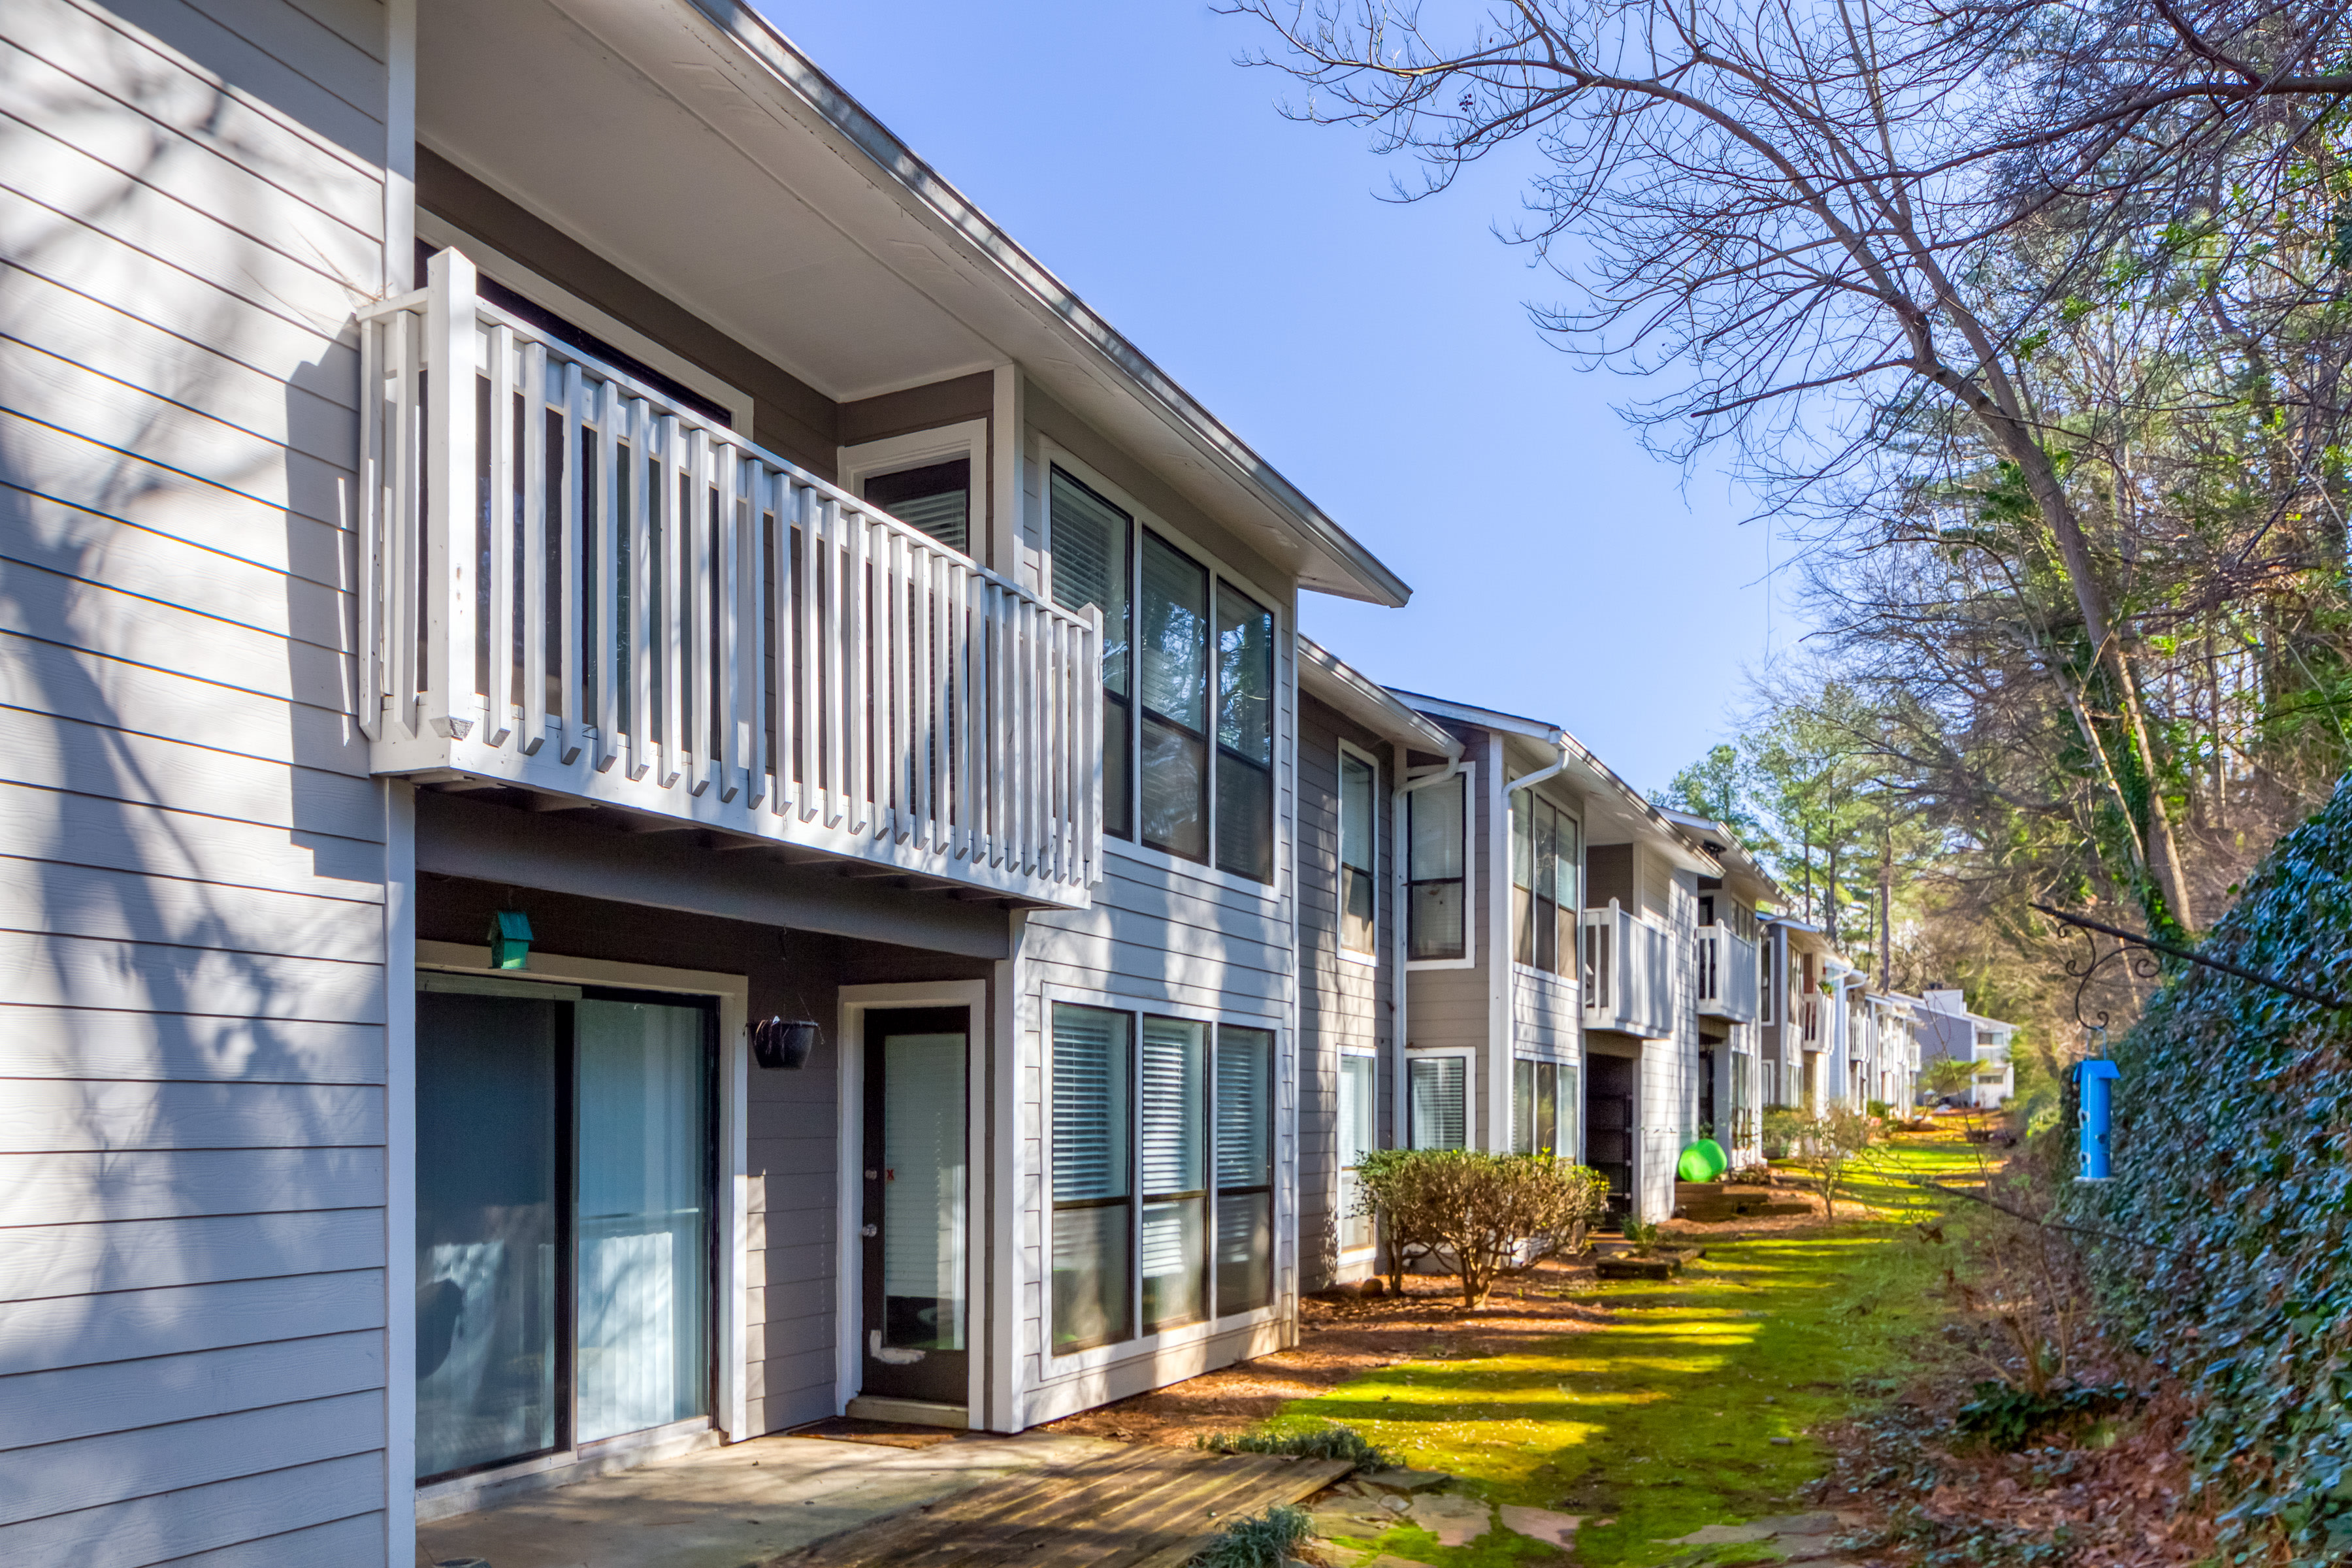 Remarkable 20 Best Apartments For Rent In Decatur Ga With Pictures Download Free Architecture Designs Terstmadebymaigaardcom